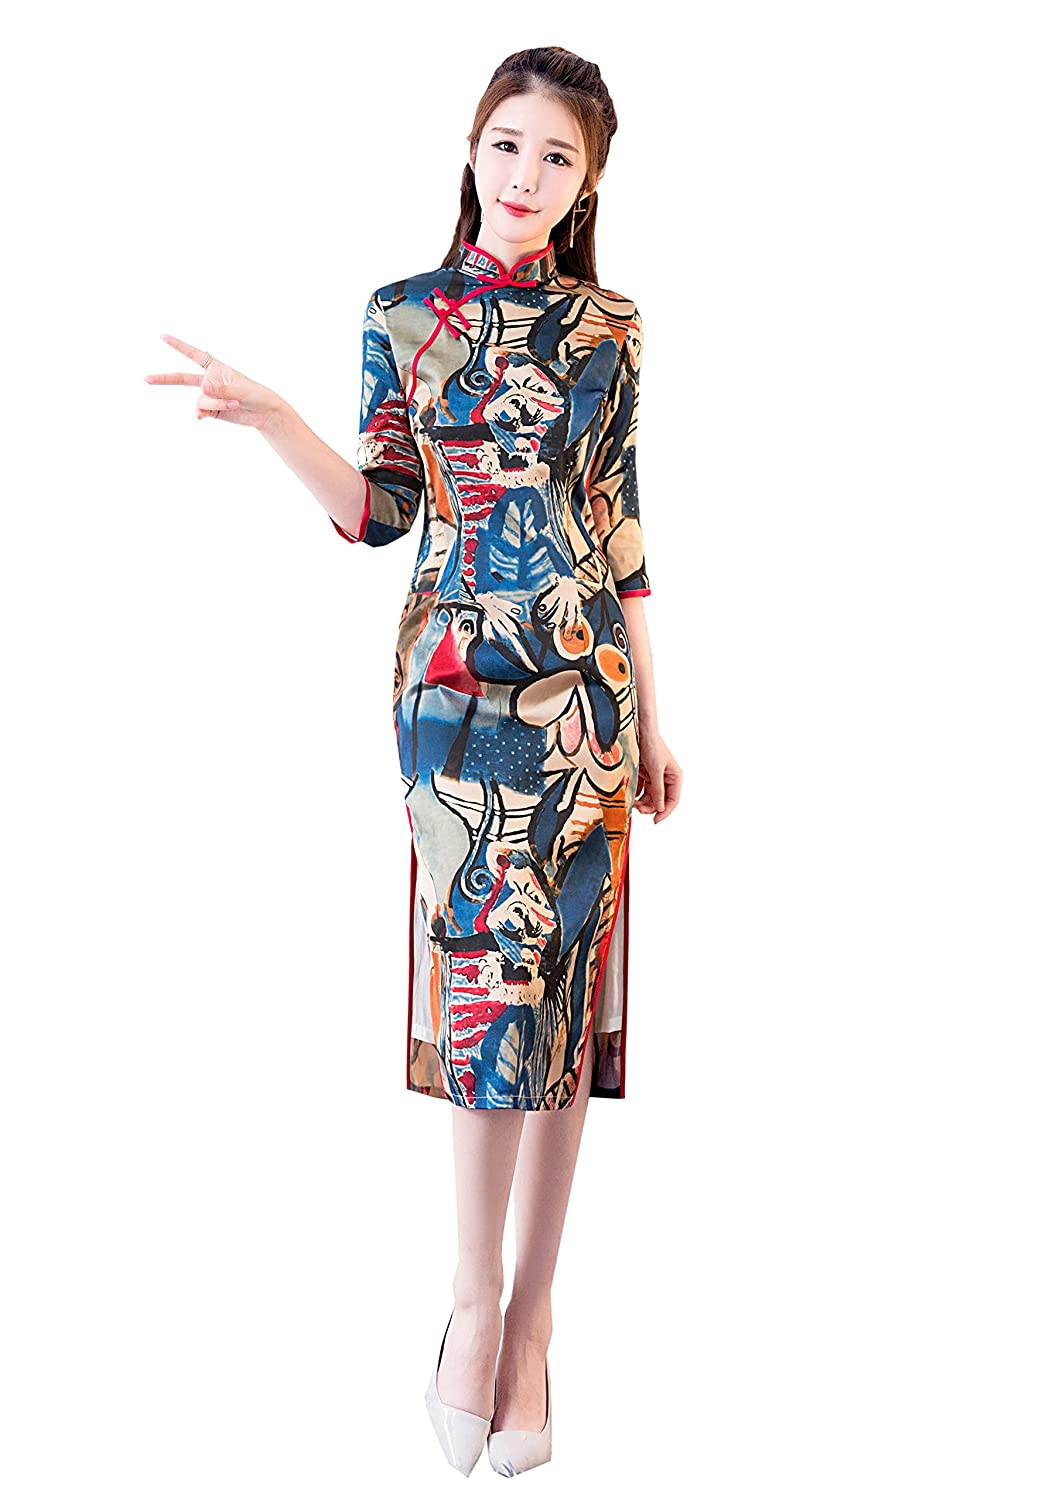 d1459f29c ACVIP Women's Flower Print Half Sleeve Double Layer Chinese Cheongsam Qipao  Party Prom Dress: Amazon.co.uk: Clothing